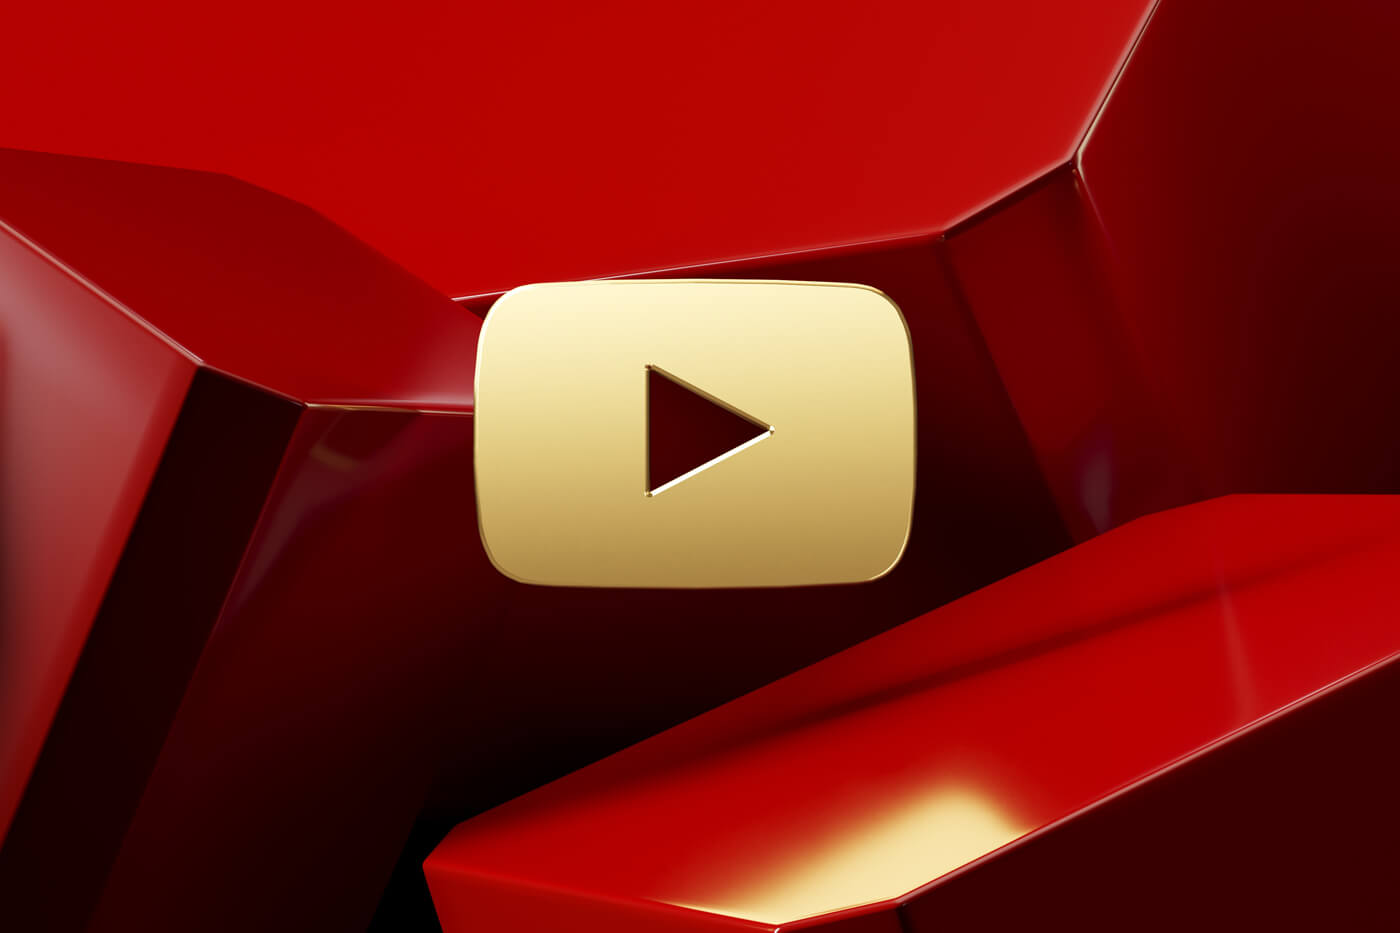 YouTube videos will default to standard definition worldwide for the next month